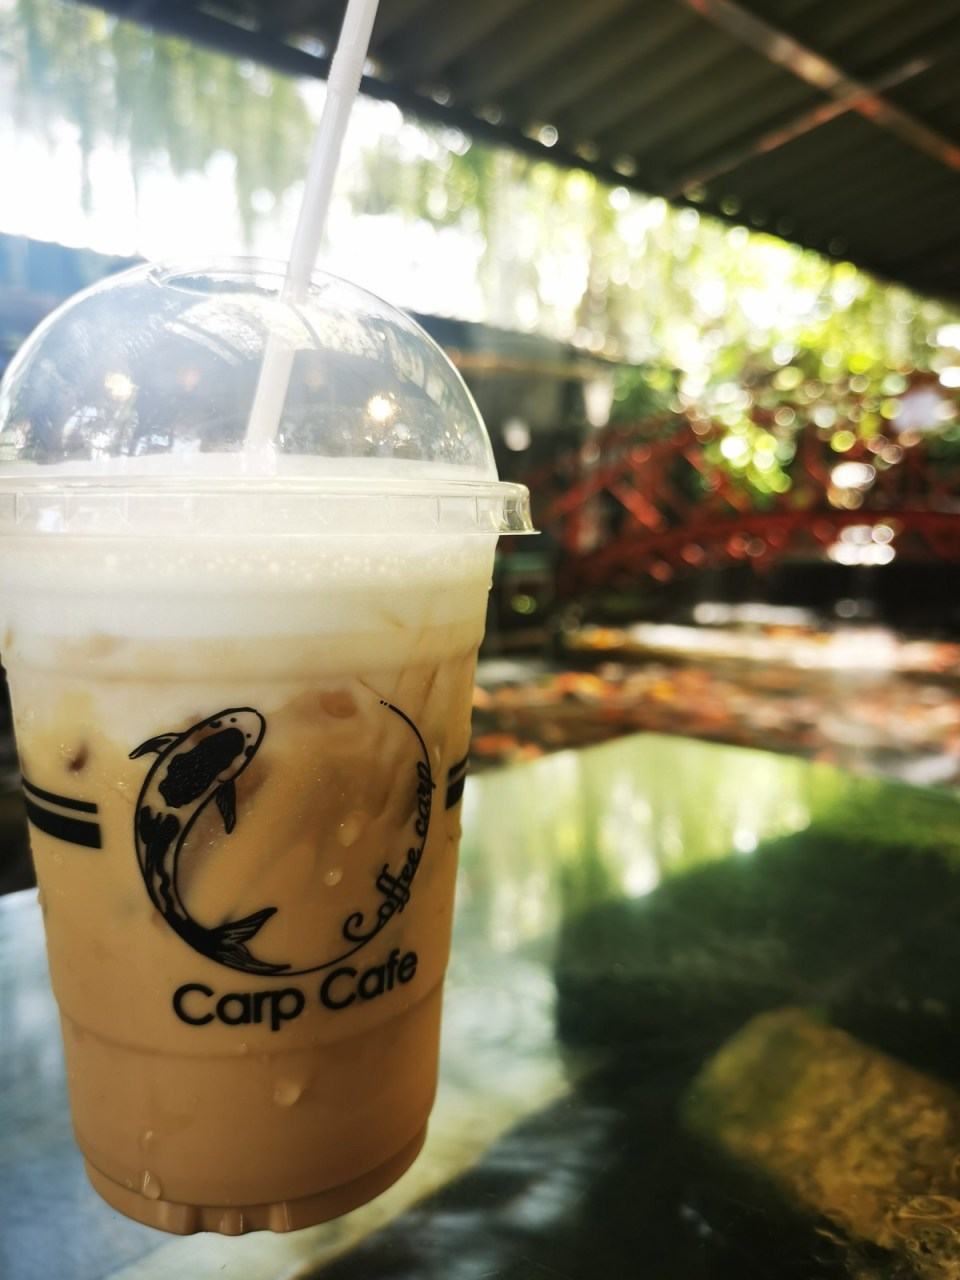 Ice cafe latte at the Carp Cafe